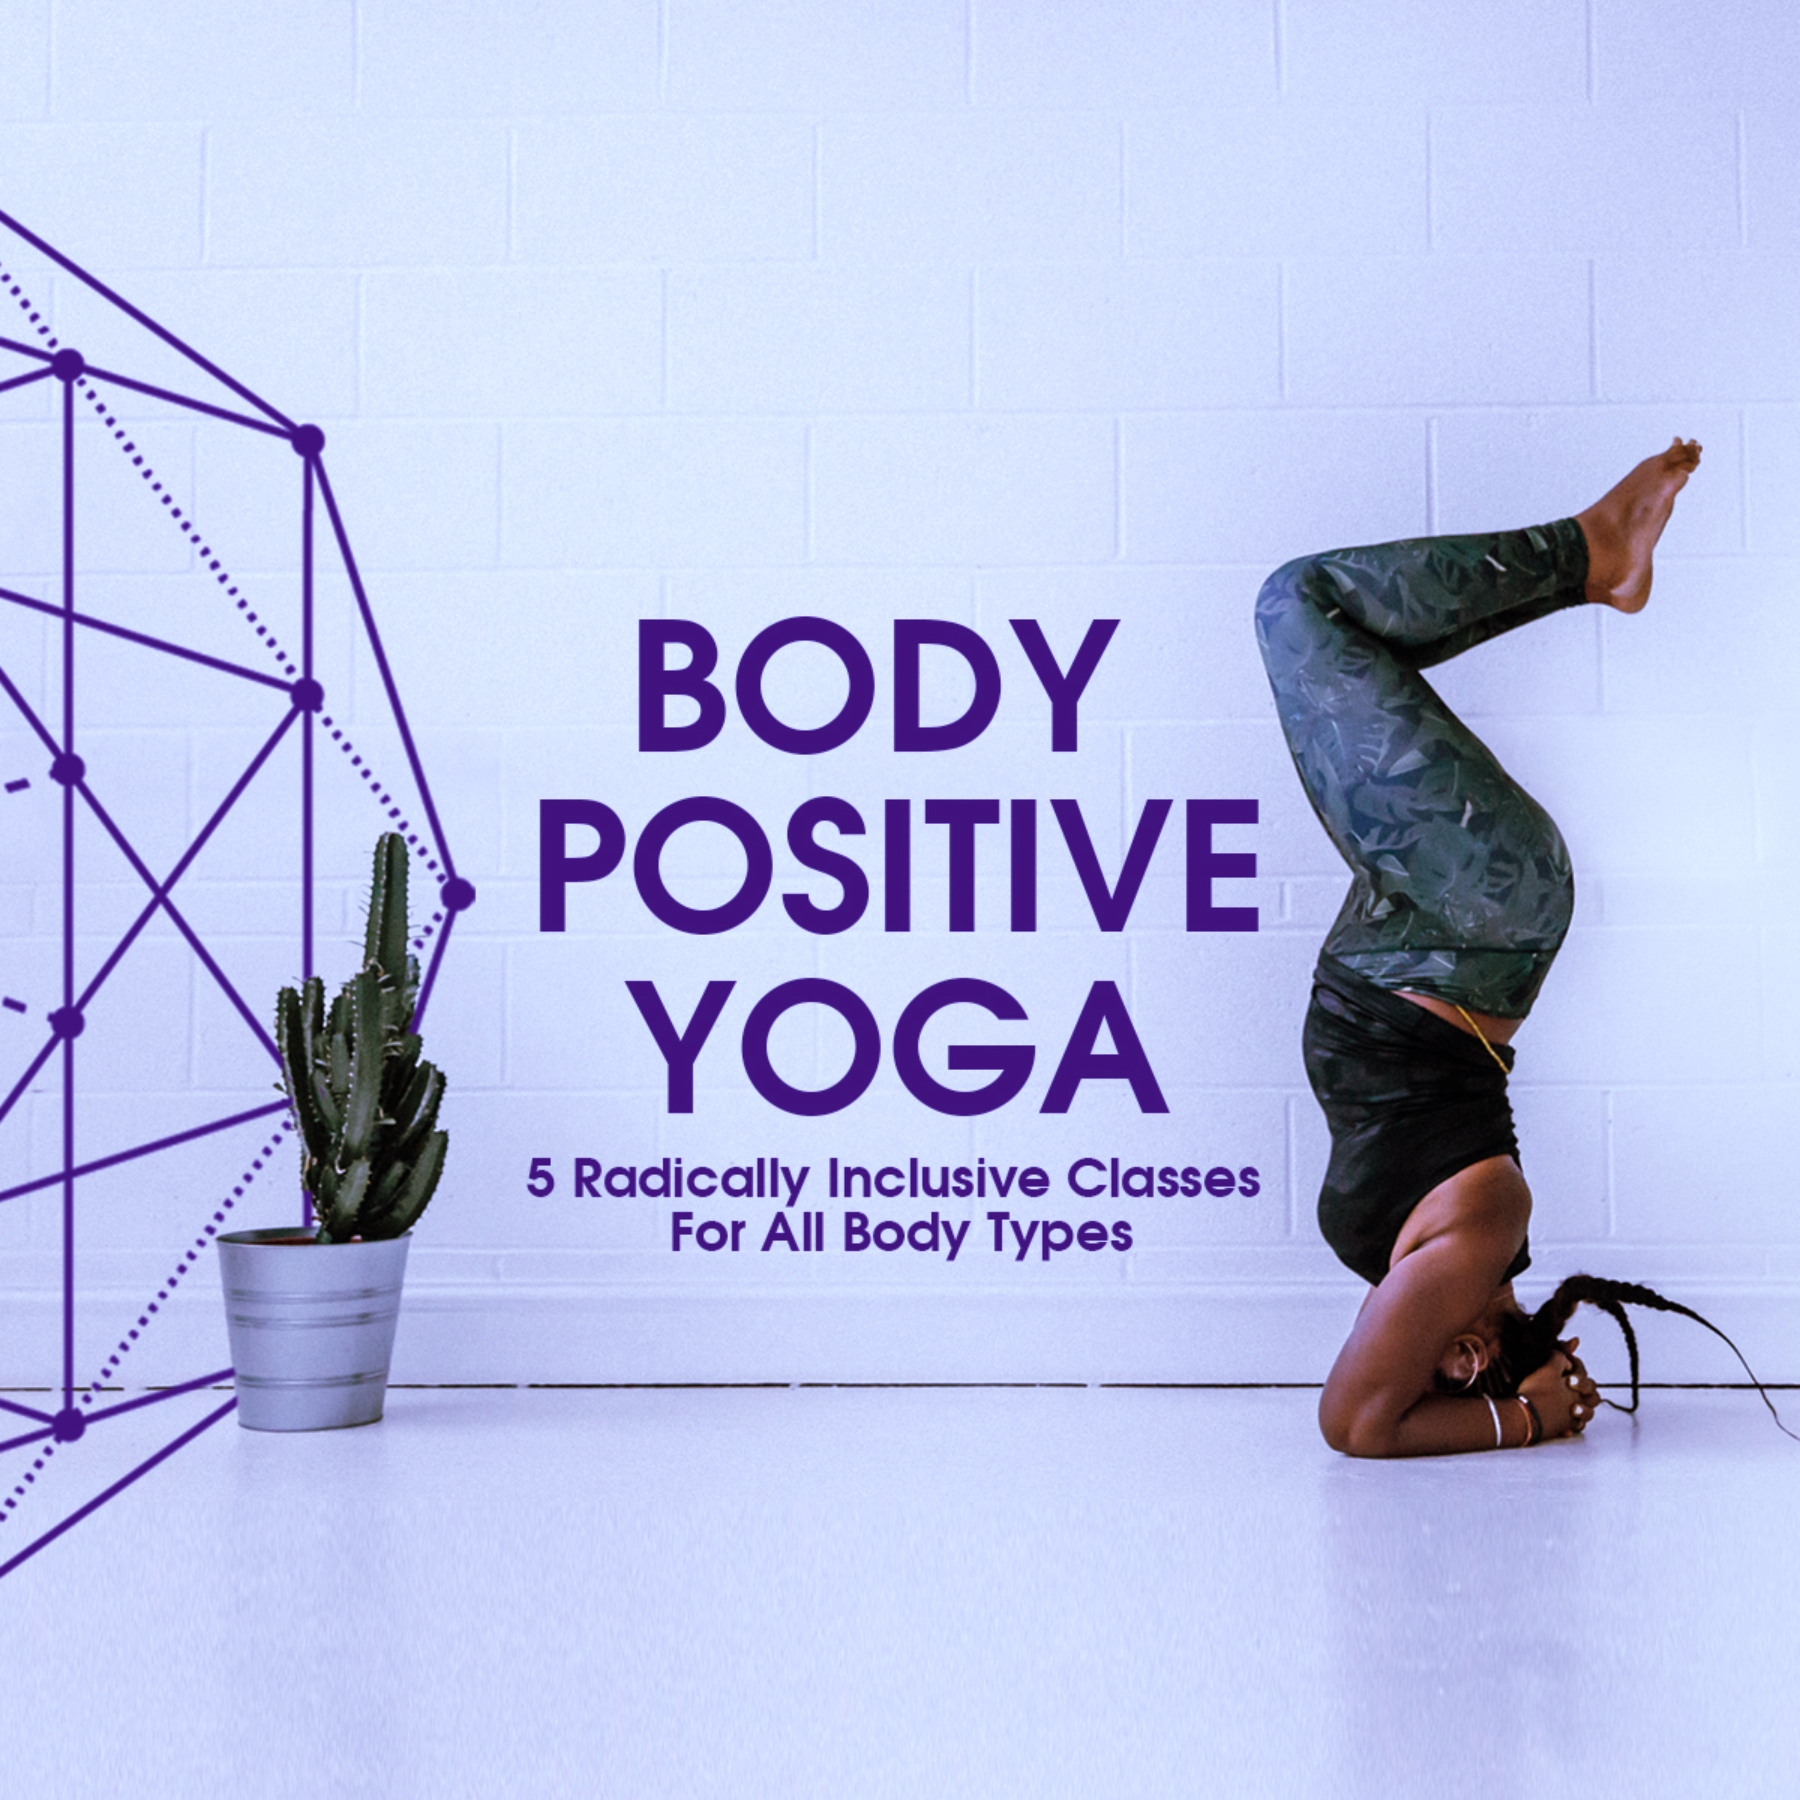 Body Positive Yoga | Radically Inclusive Yoga Program